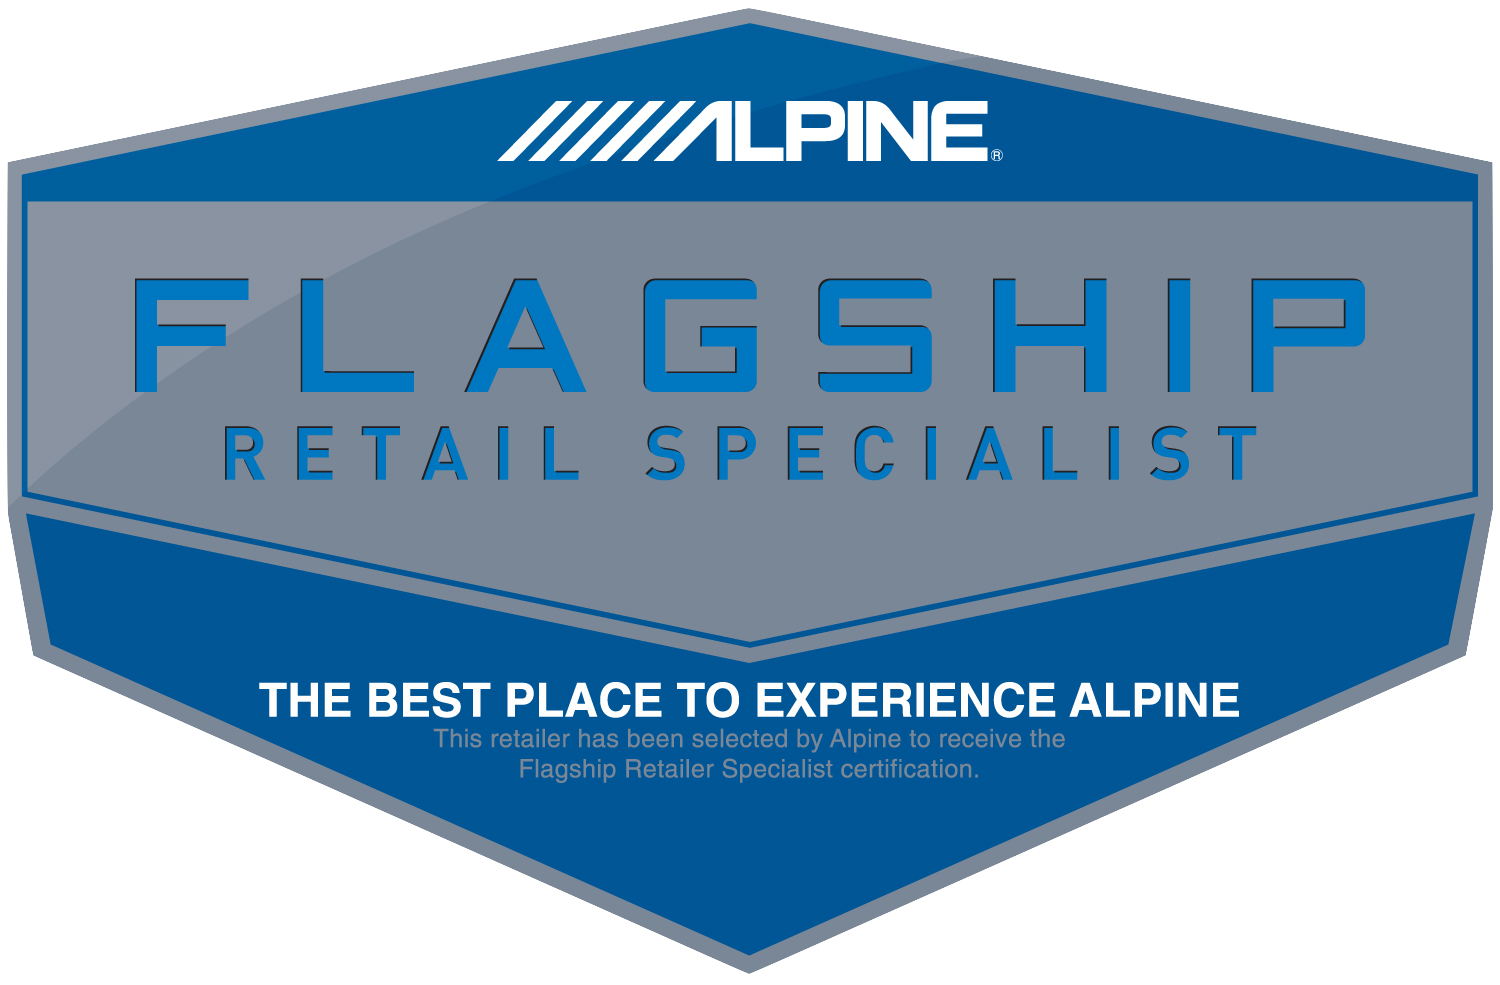 Flagship Retail Specialist